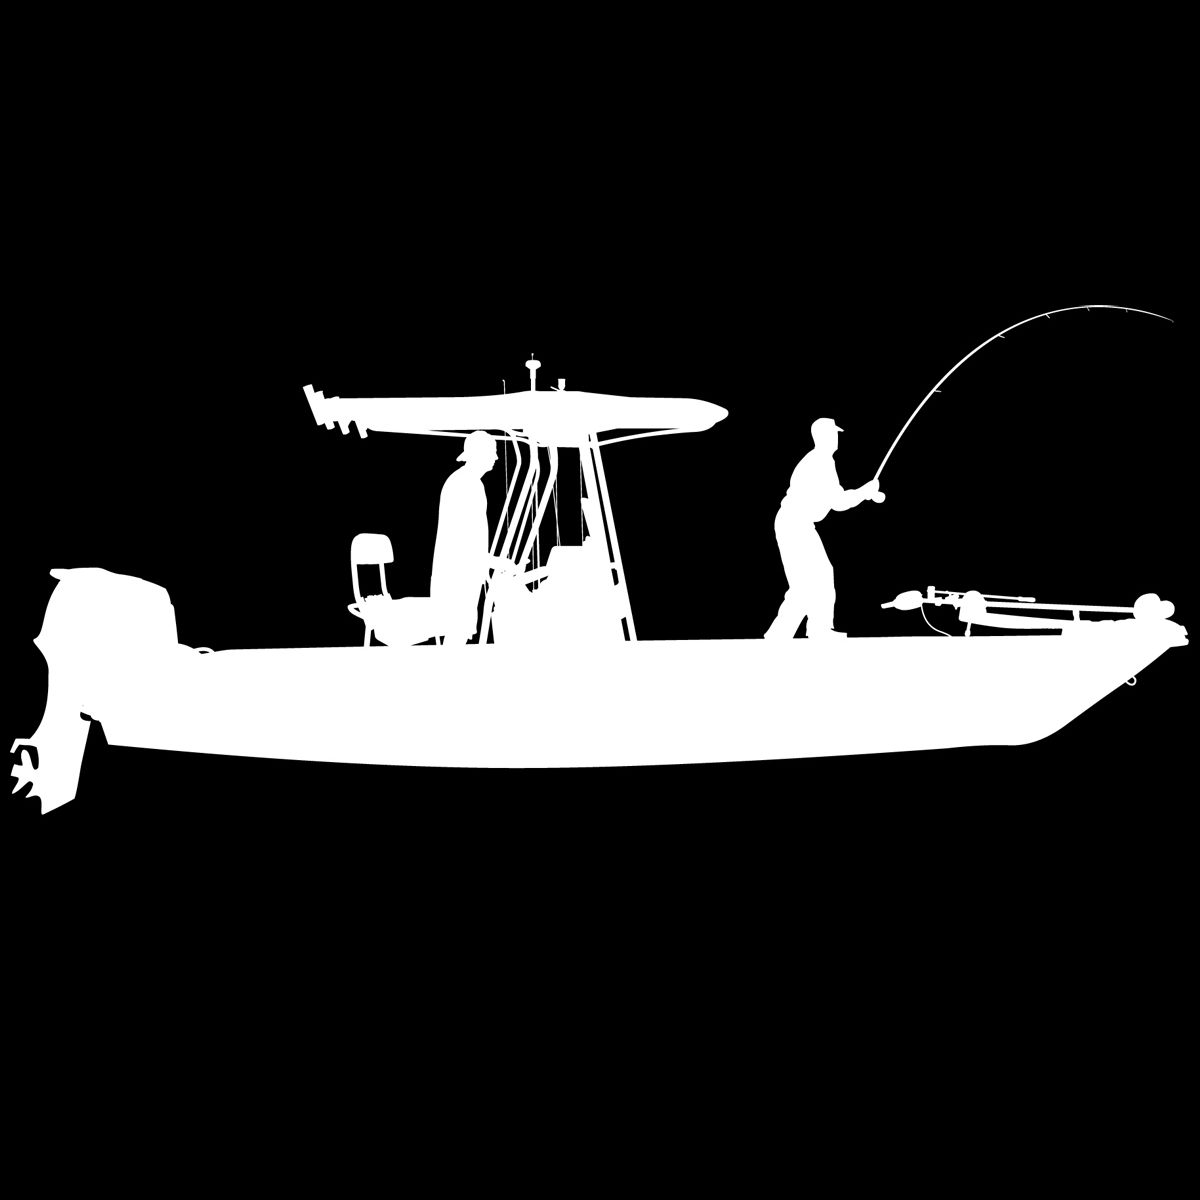 Skiff Life TTop Flats Console Fishing BoatCar Decal Stickers - Boat stickers and decals